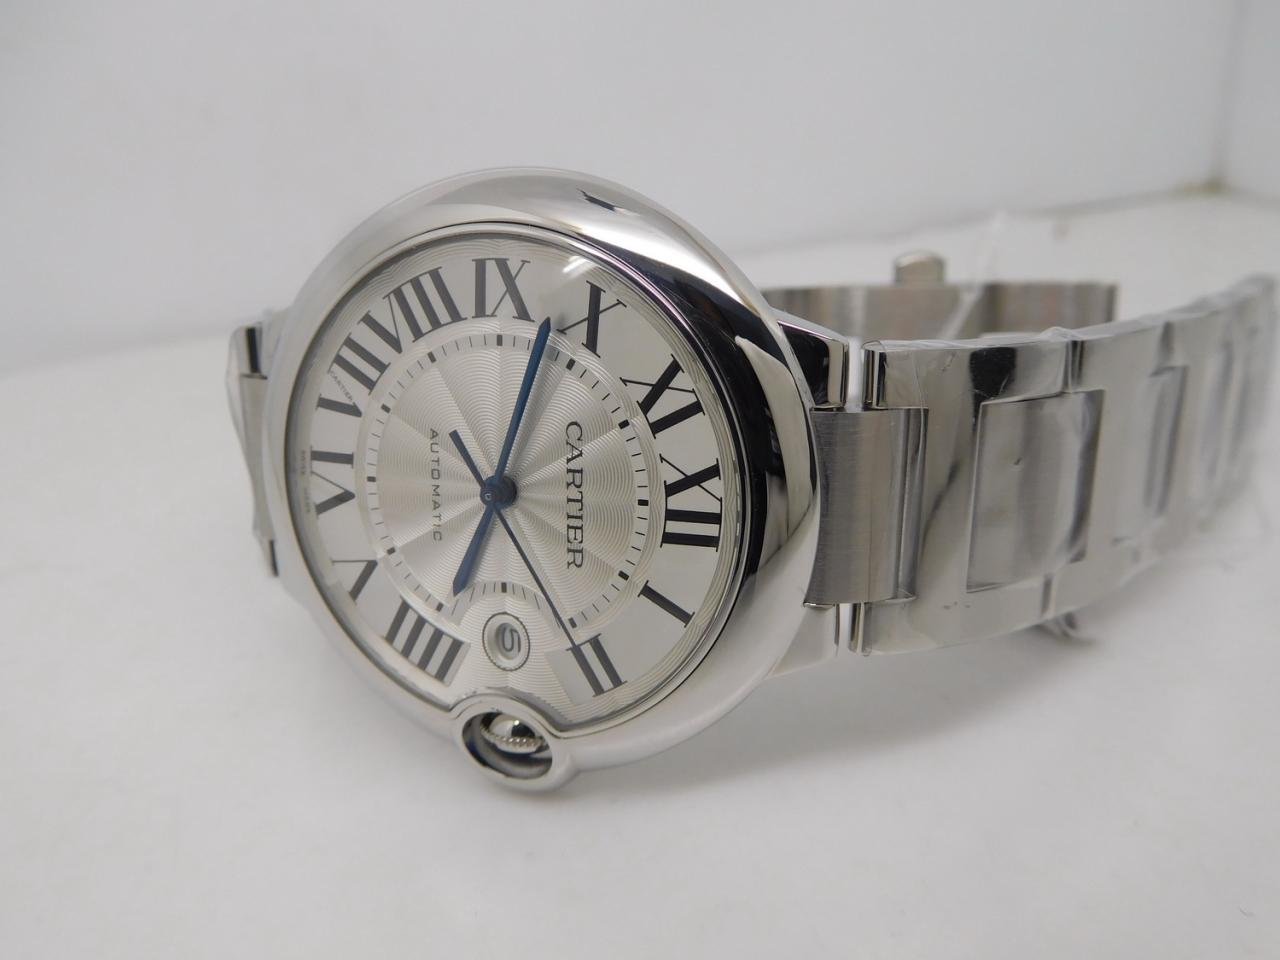 42mm Cartier Ballon Bleu Case